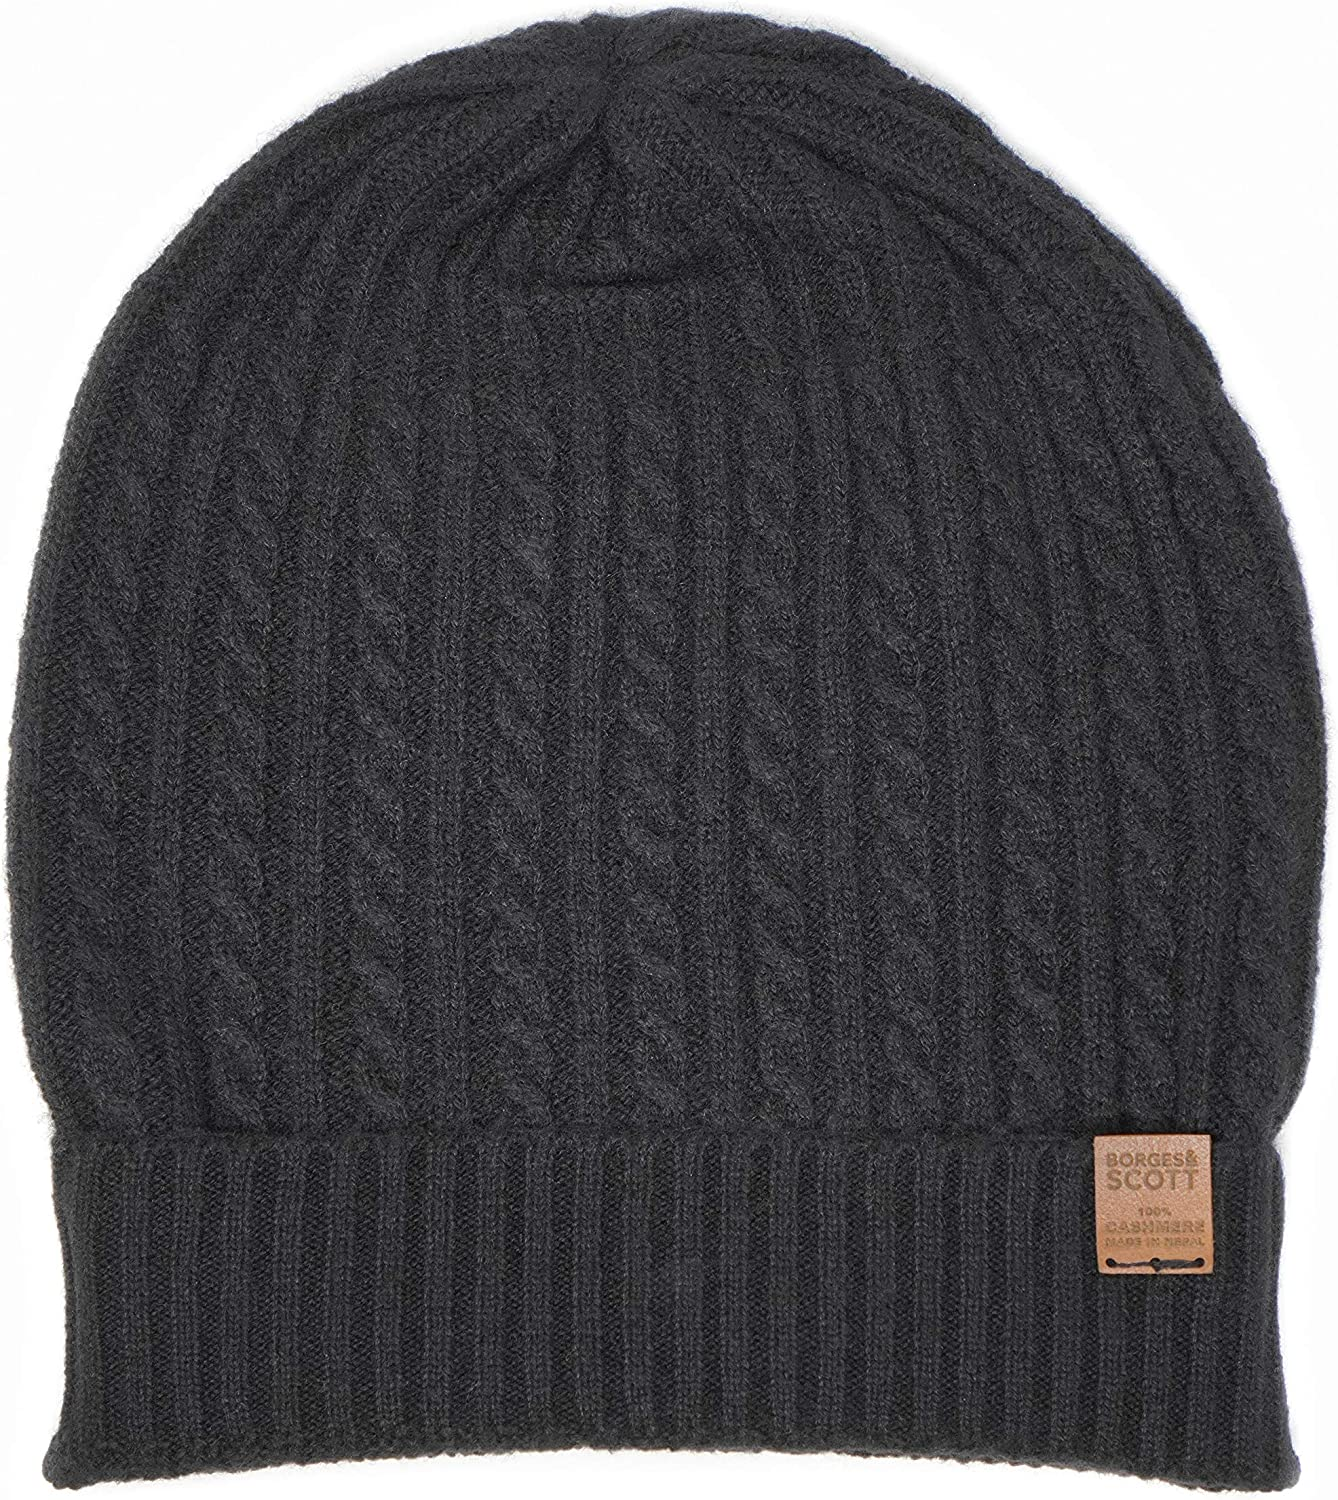 The Whistler - 100% in Tucson Mall Nepal Cashmere Made Oakland Mall